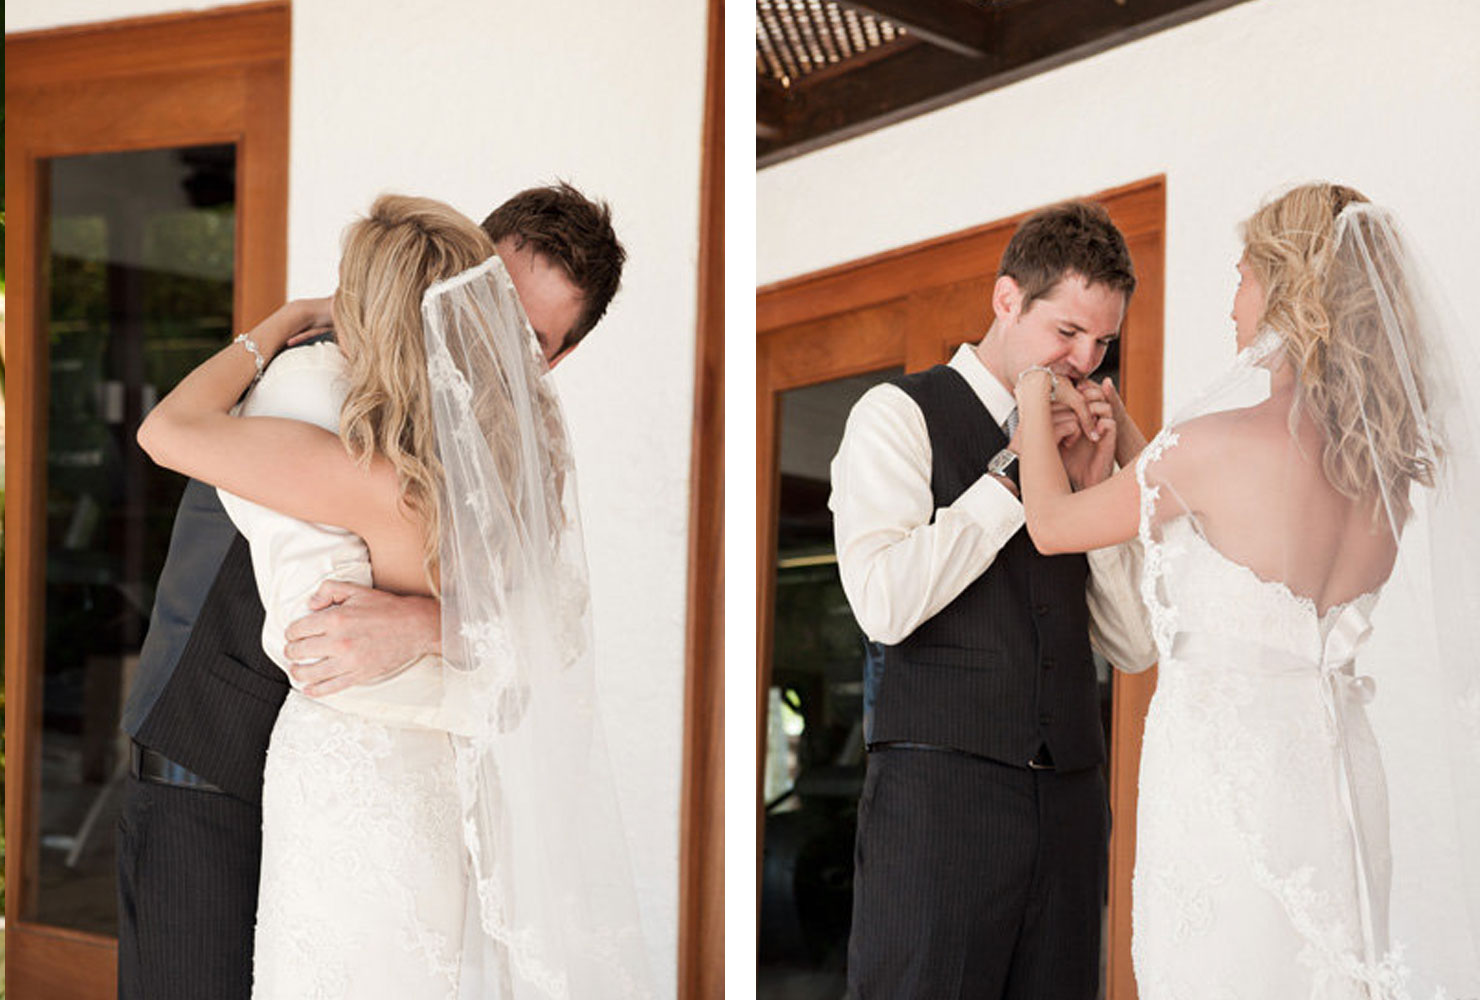 Bride and groom hugging with groom kissing bride's hands